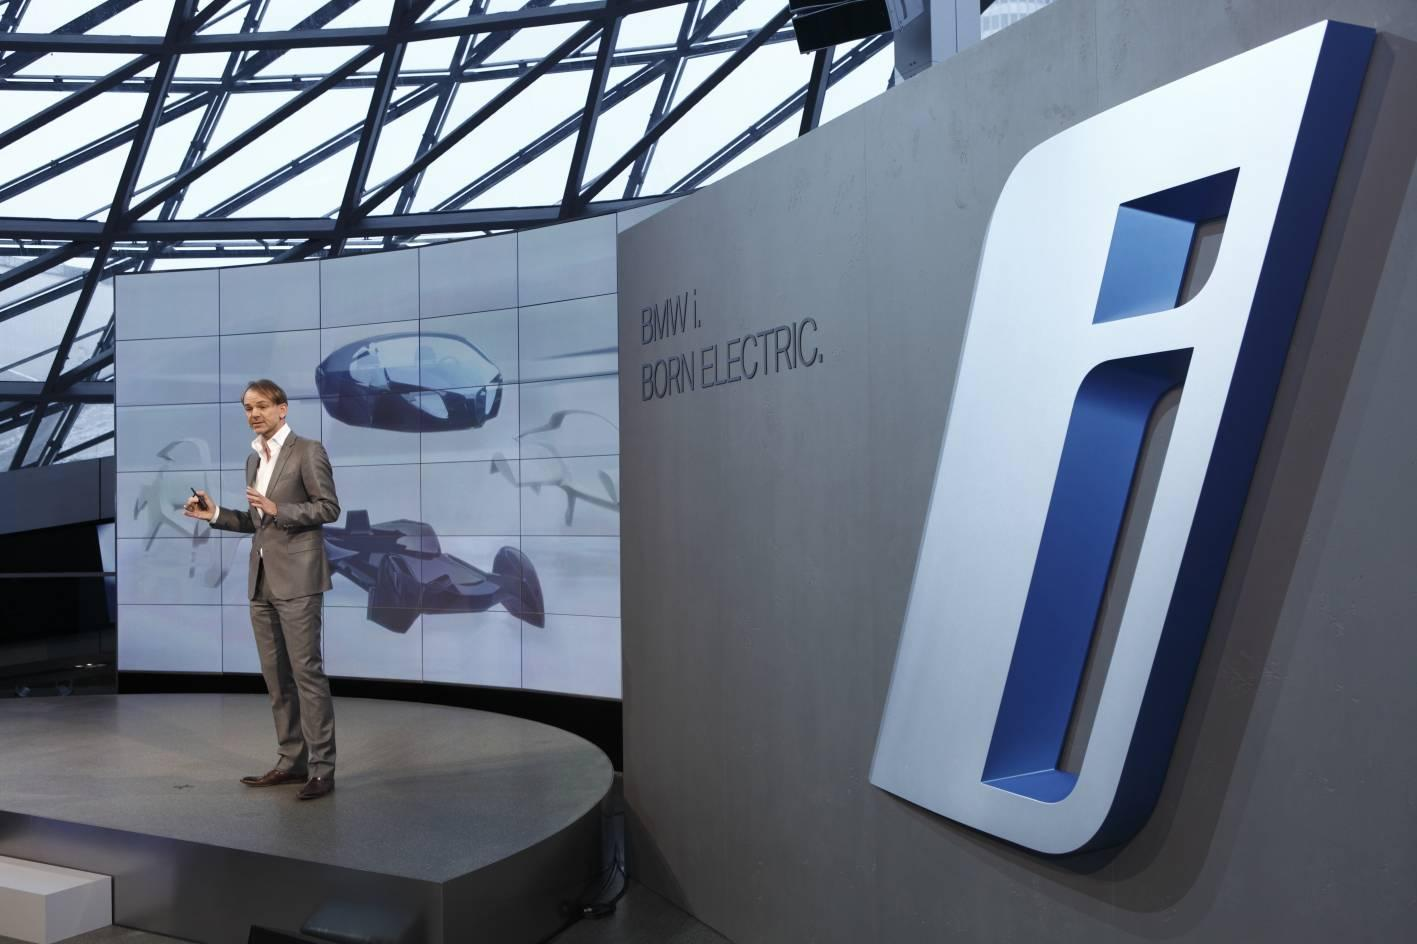 'Born Electric' BMW launched its new BMWi sub-brand in Munich on Monday